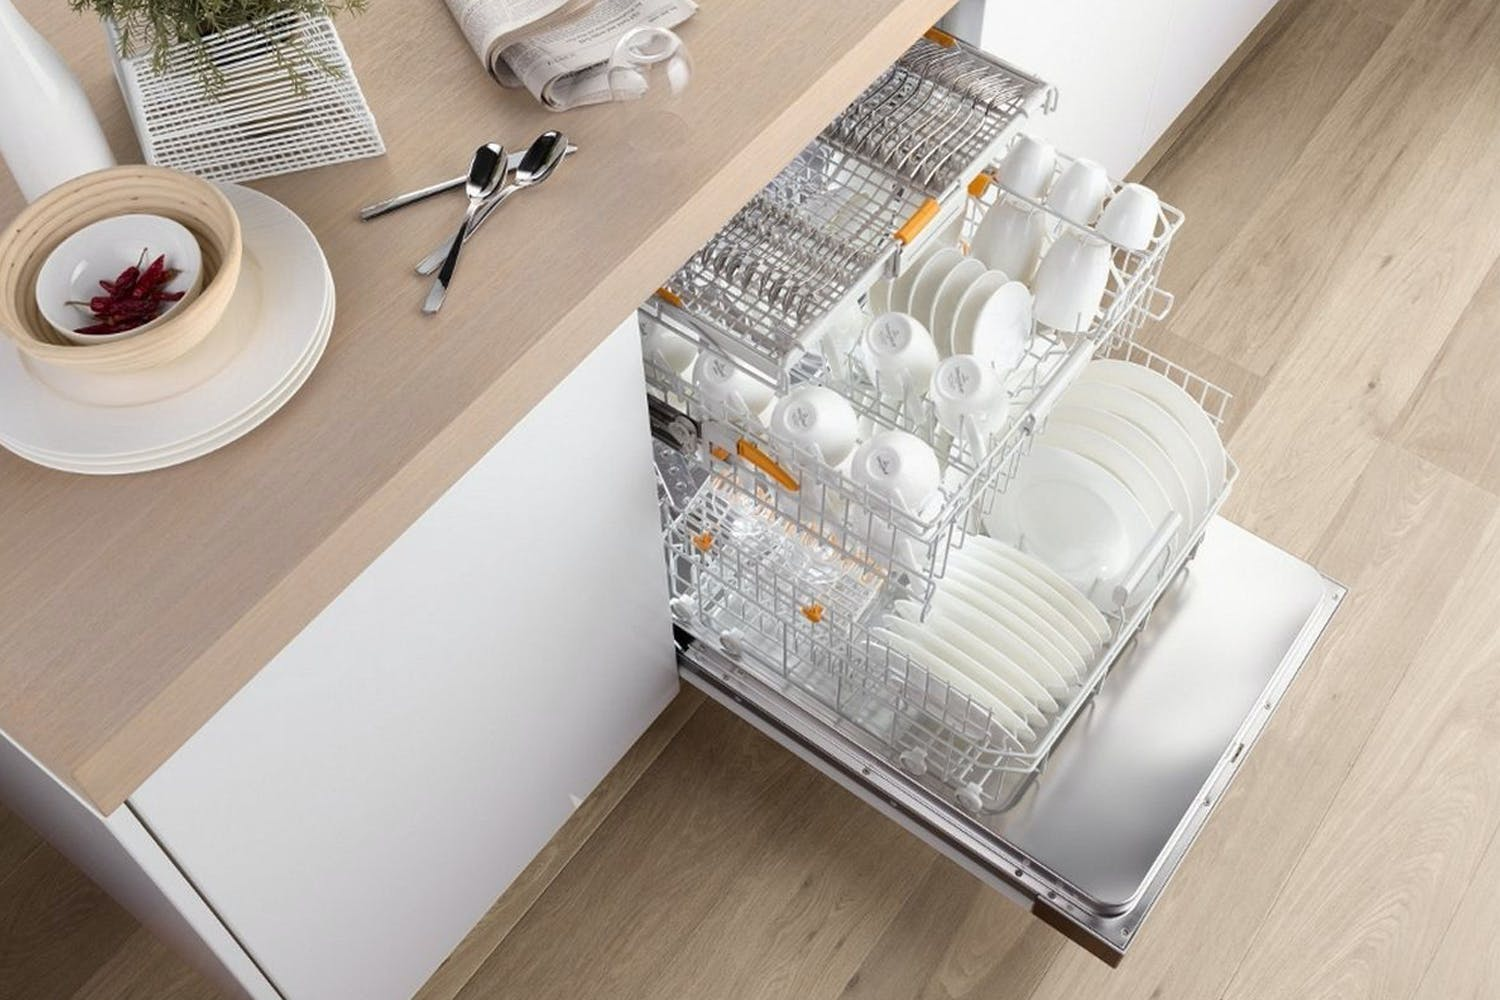 Miele G 4940 SC Jubilee  Freestanding dishwashers   with 3D cutlery tray for maximum convenience at an attractive entry level price